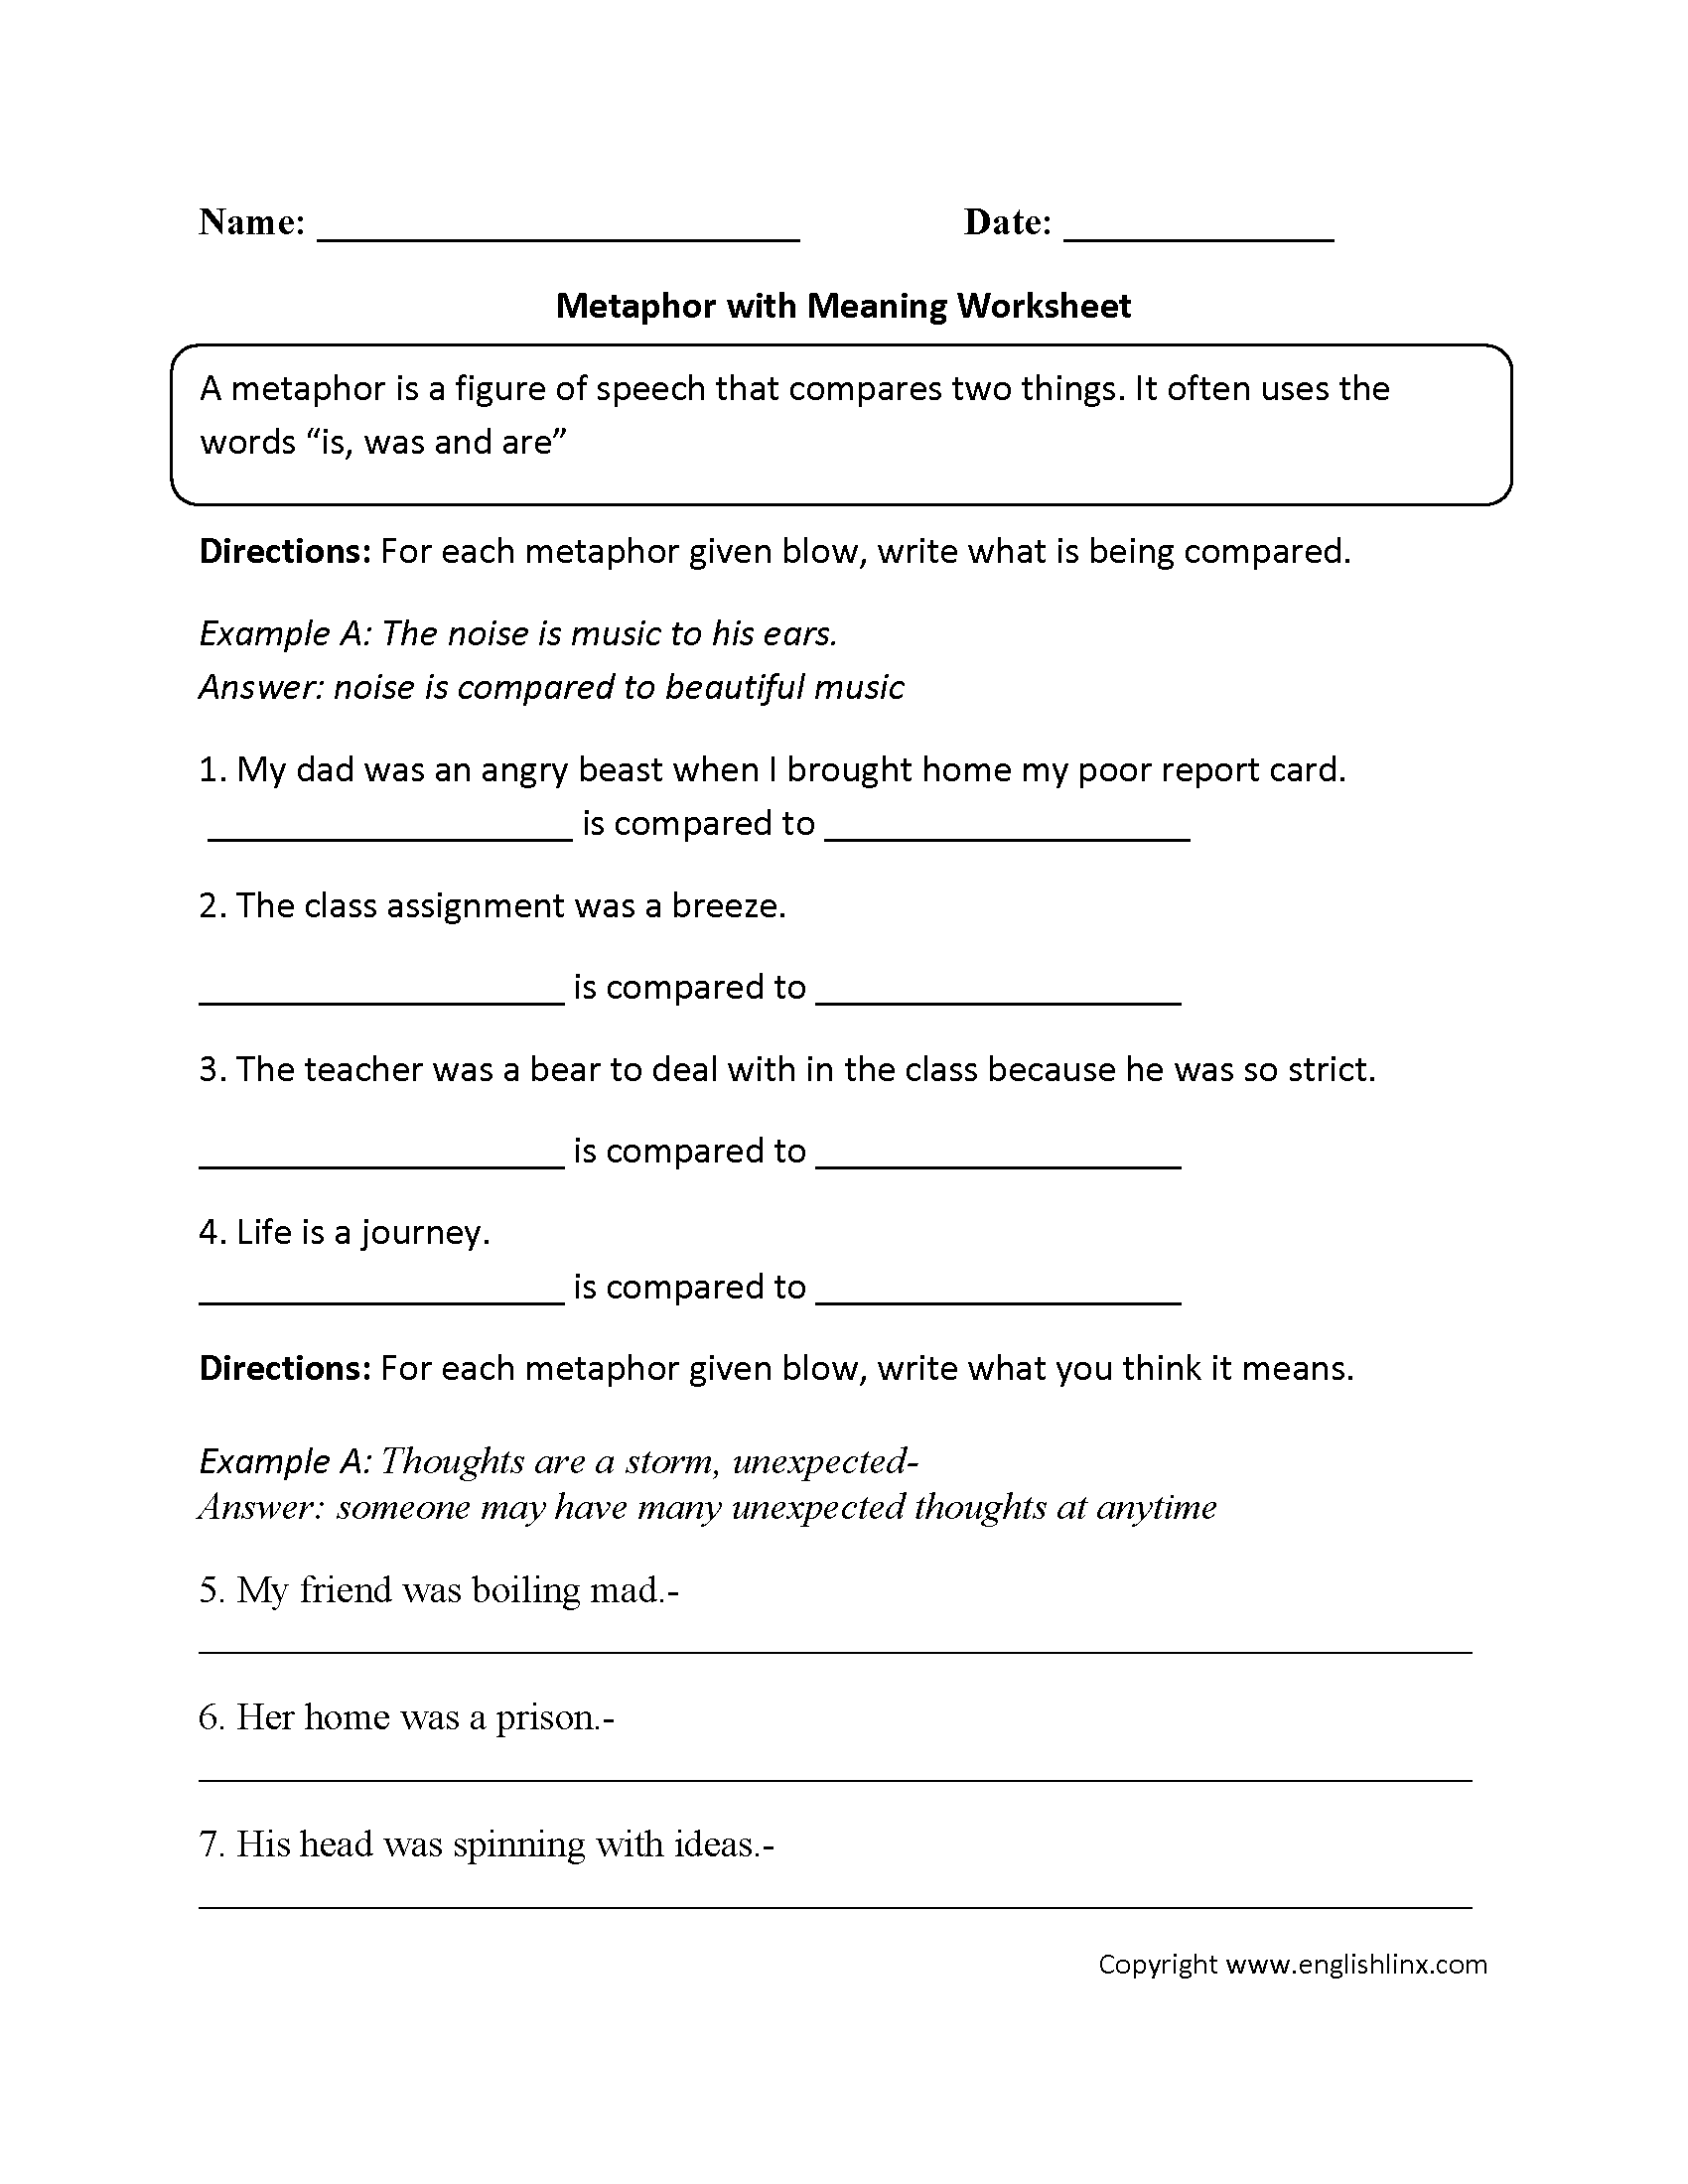 worksheet Metaphors Worksheets figurative language worksheets metaphor with meaning worksheet